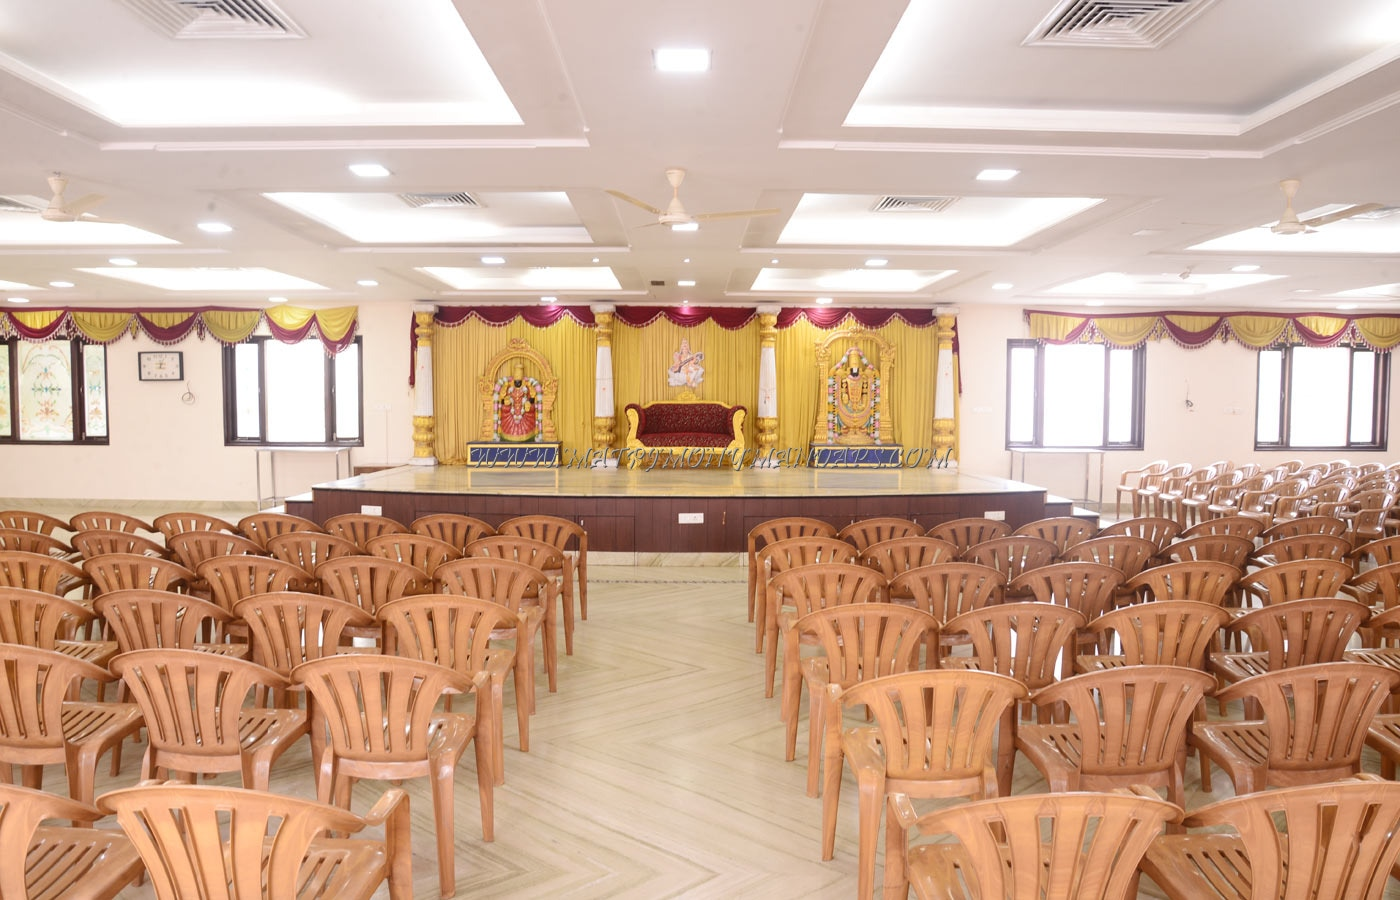 Find the availability of the Suprabha Mahal (A/C) in Mogappair, Chennai and avail special offers